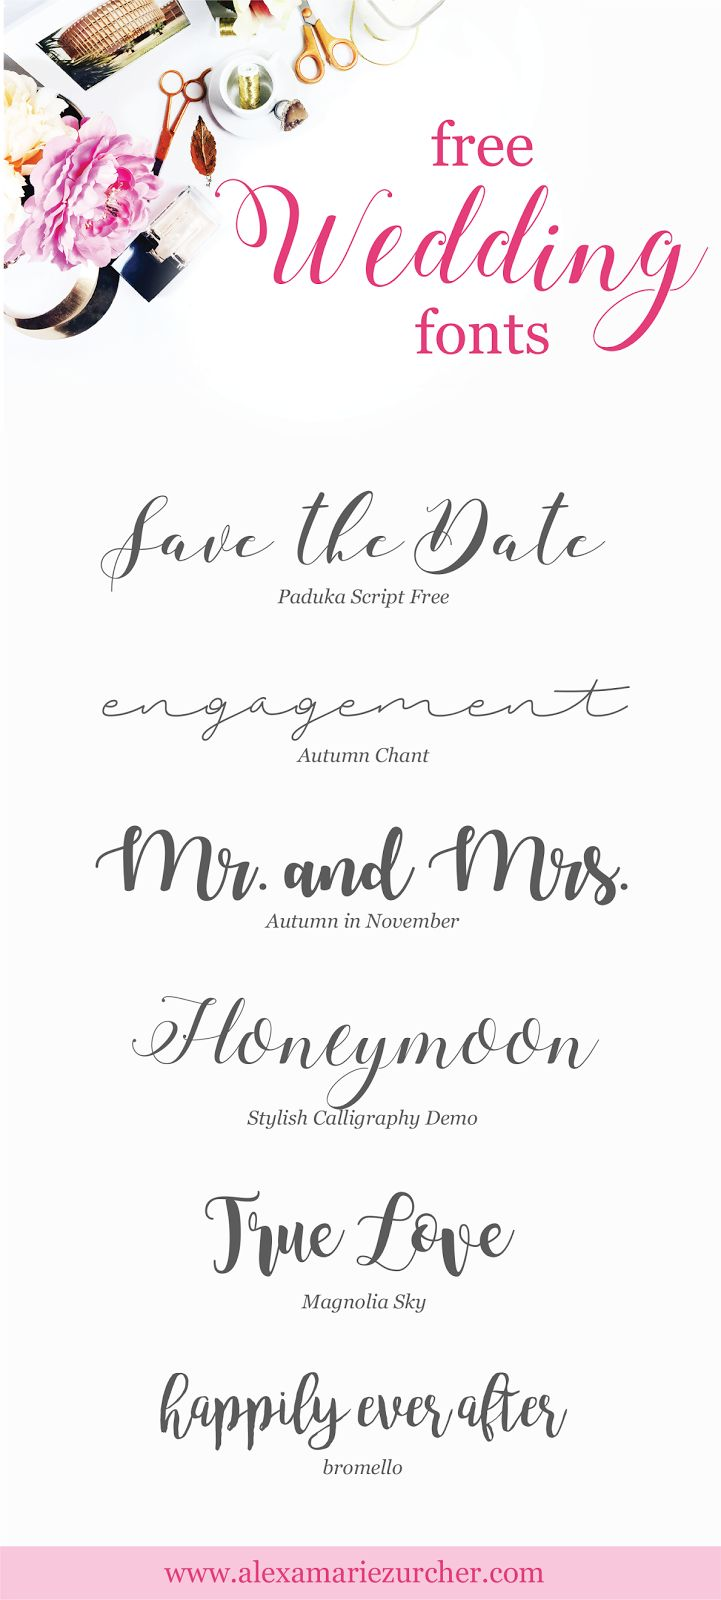 Free Wedding Fonts!